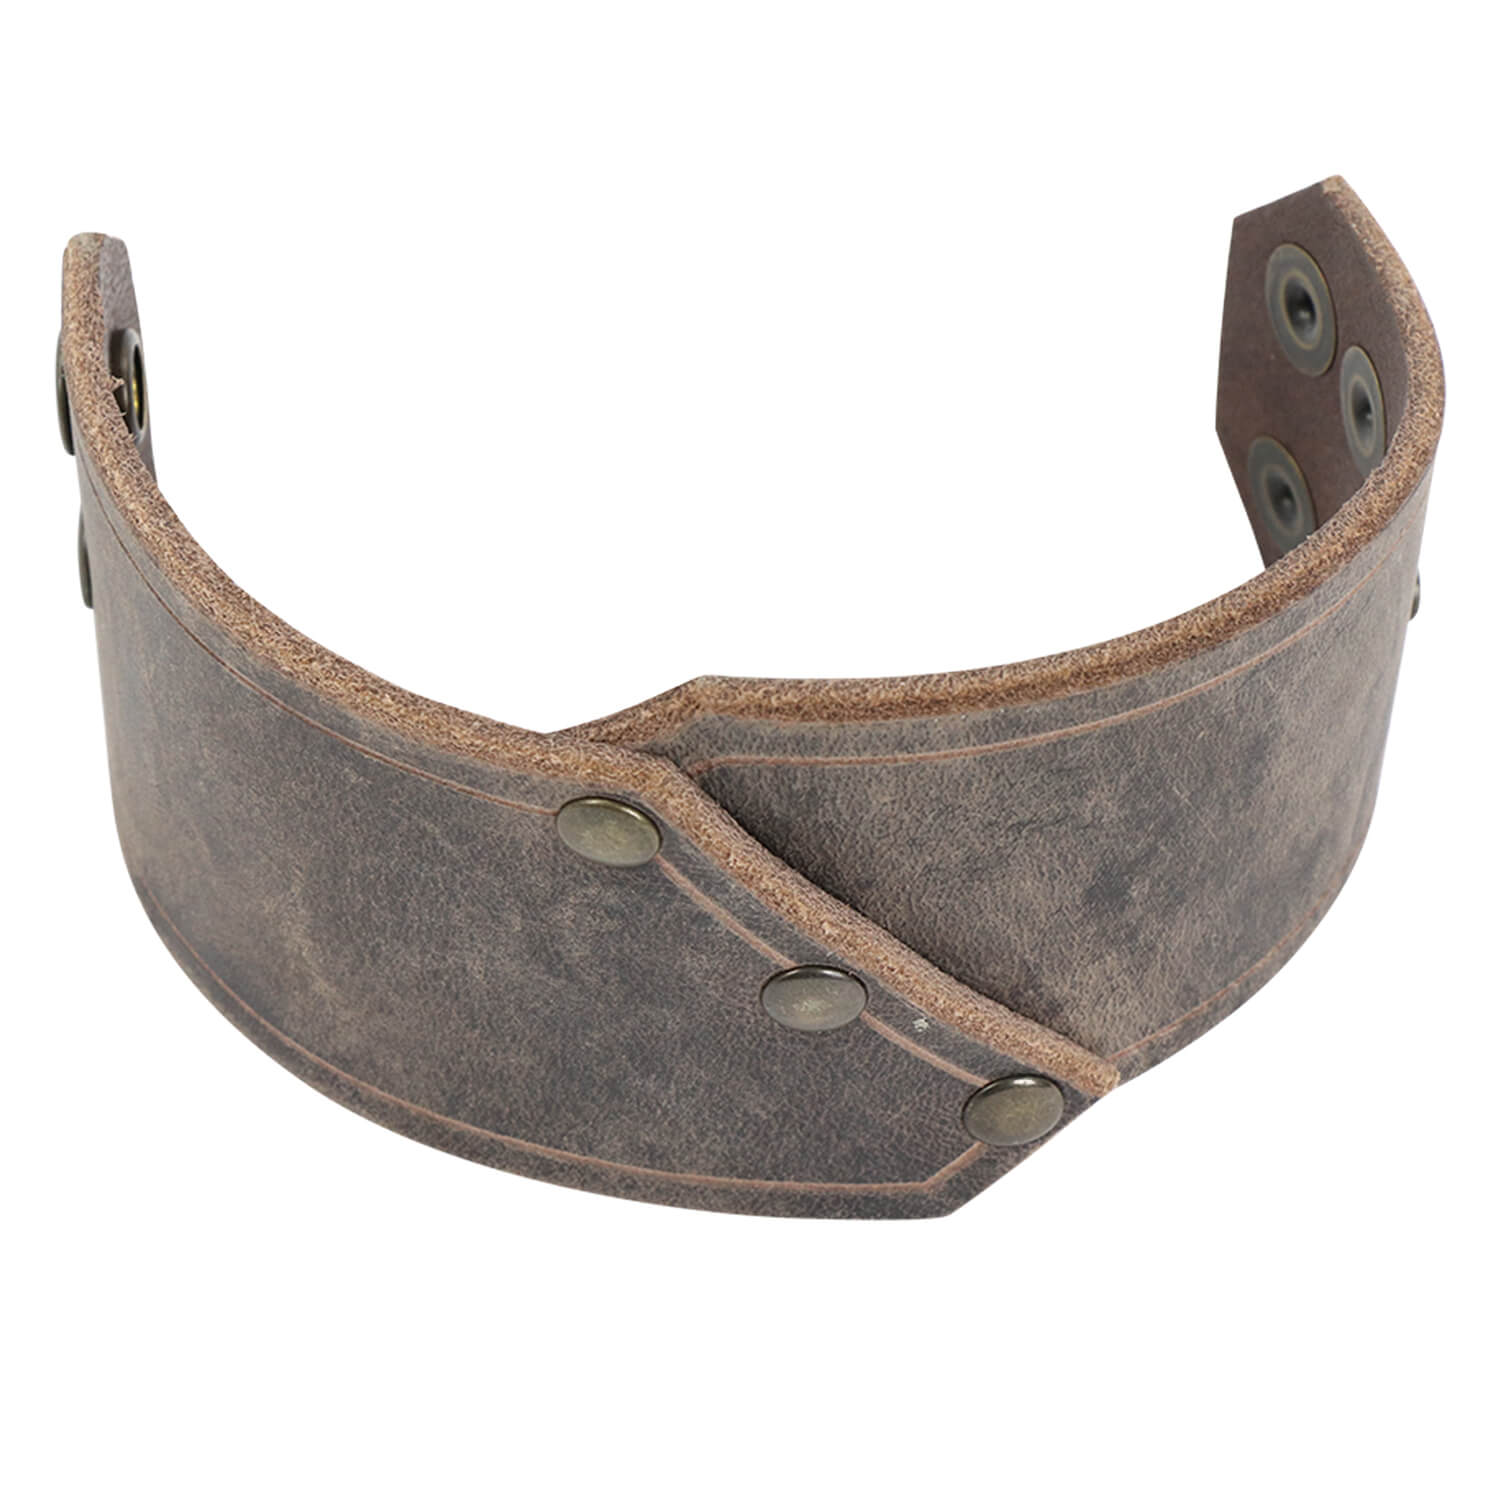 Jester Leather bracelet